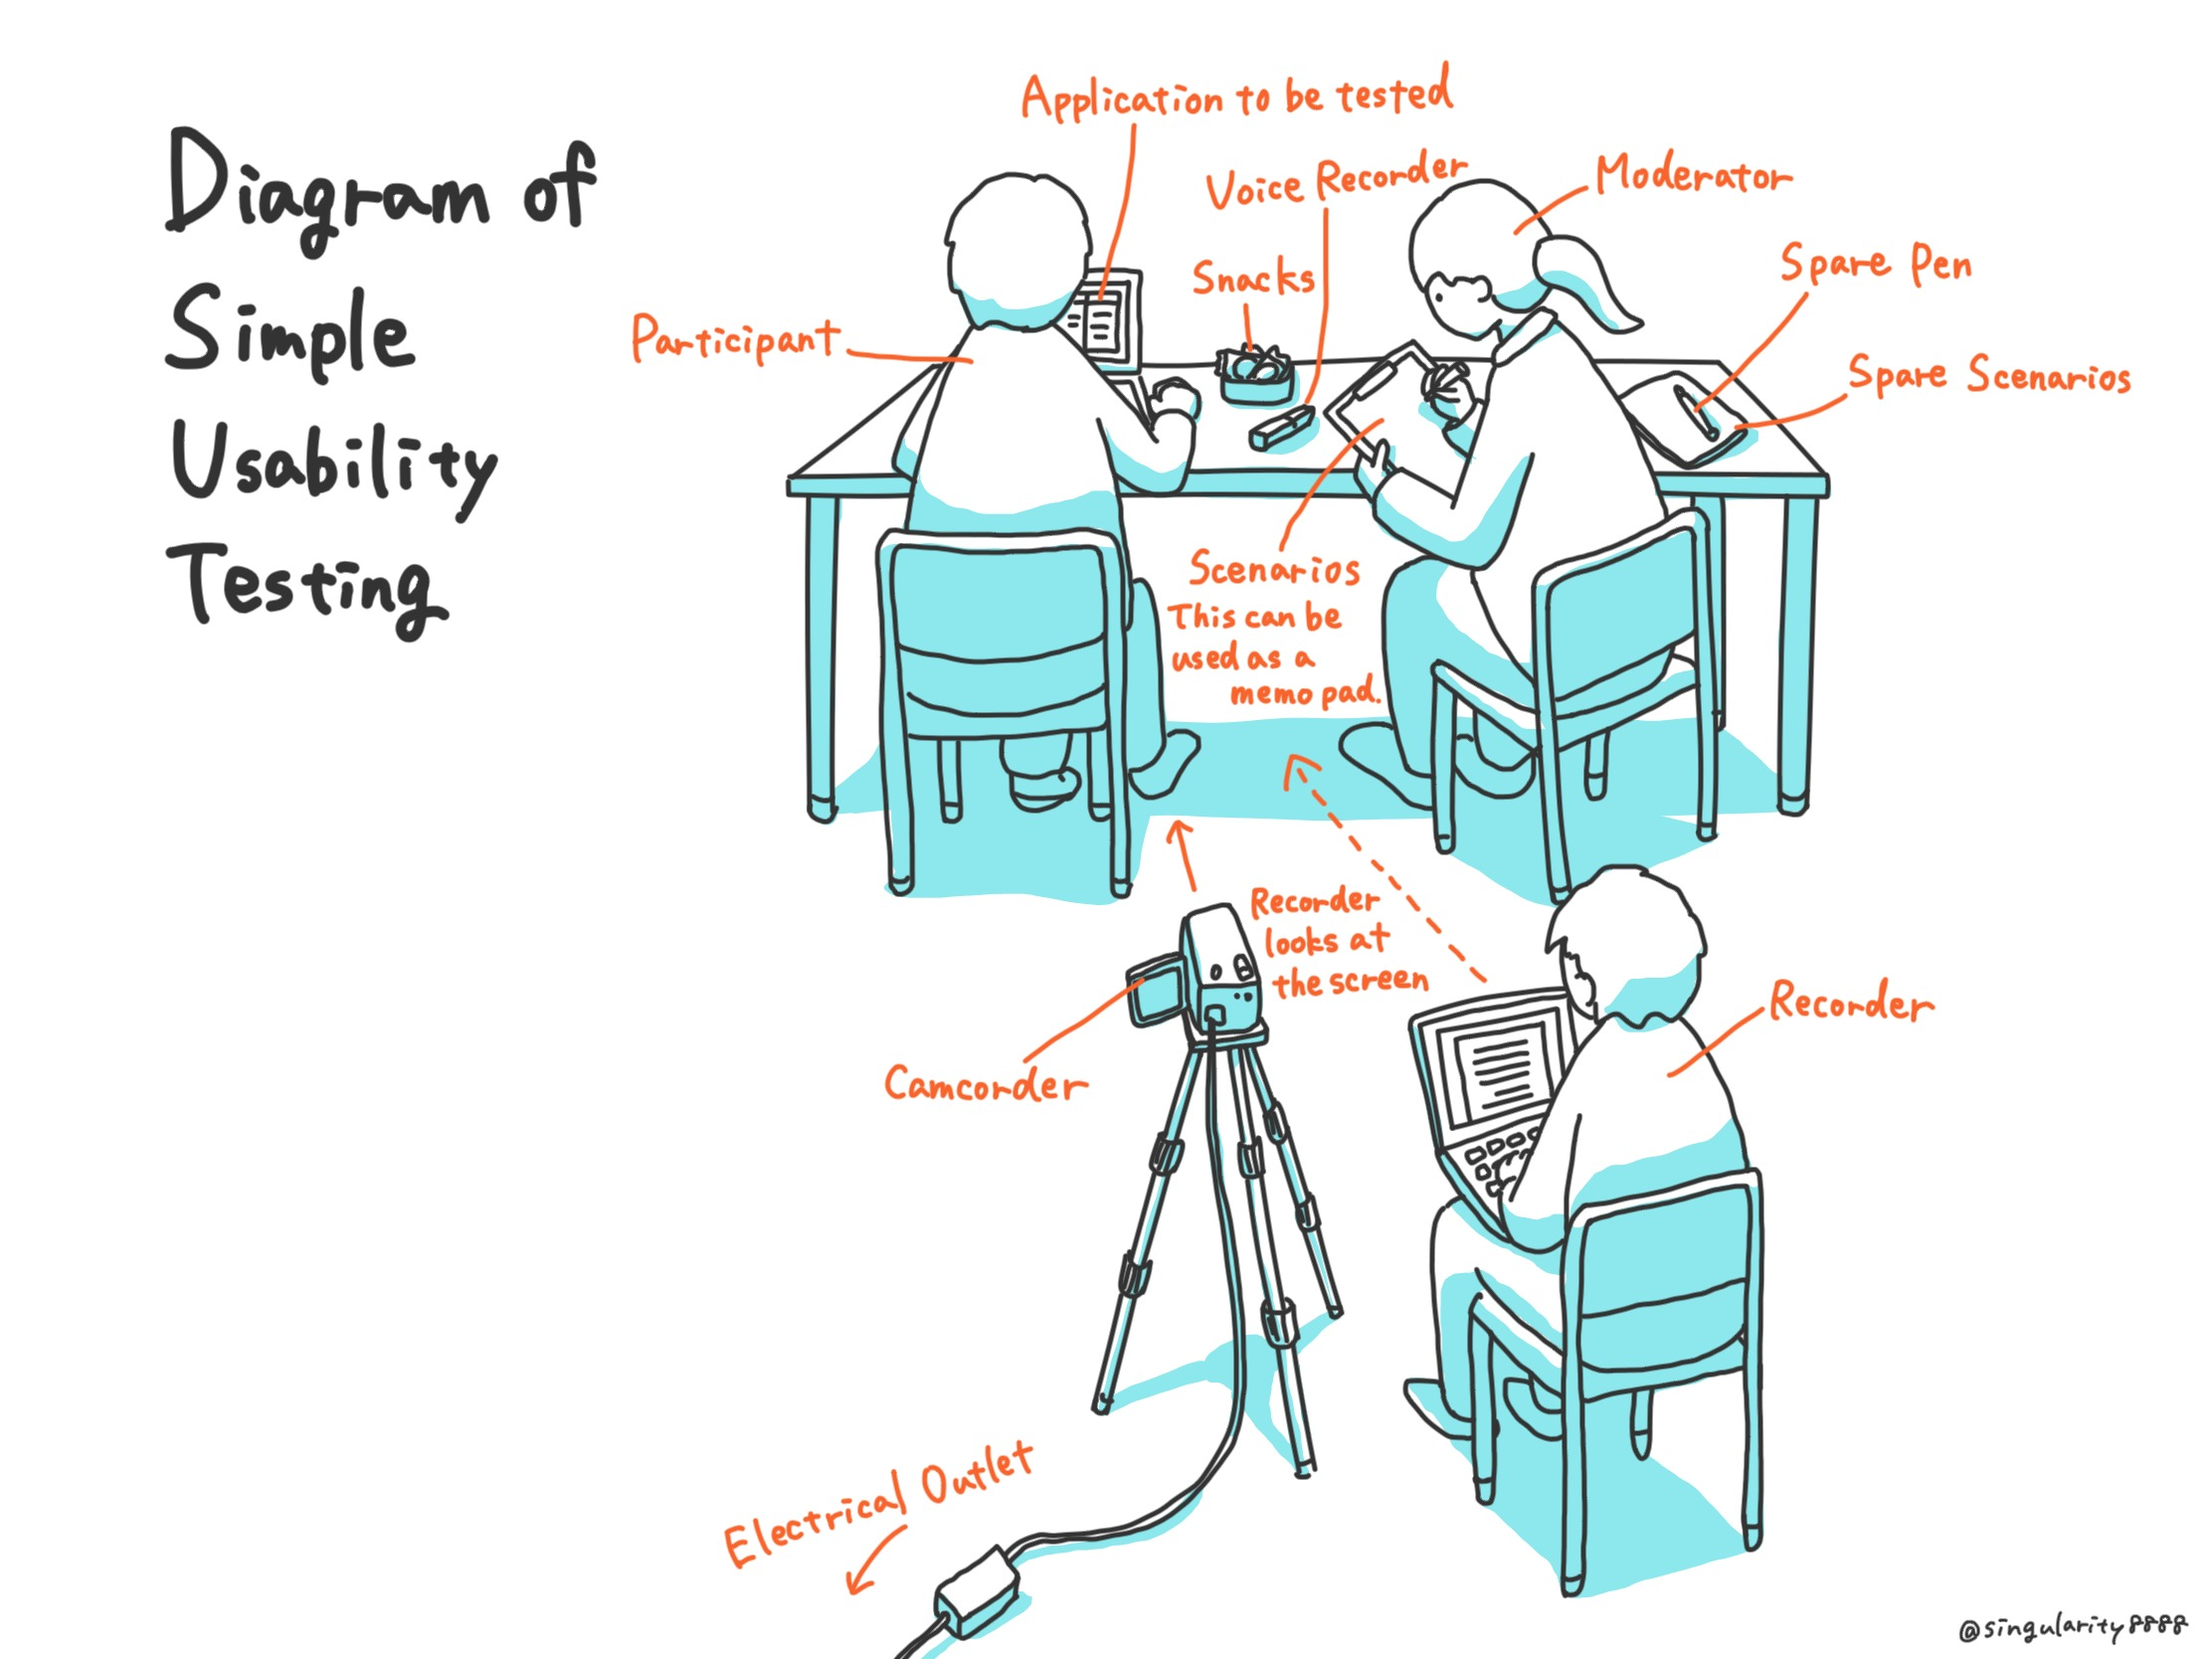 Diagram of Simple Usability Testing Image